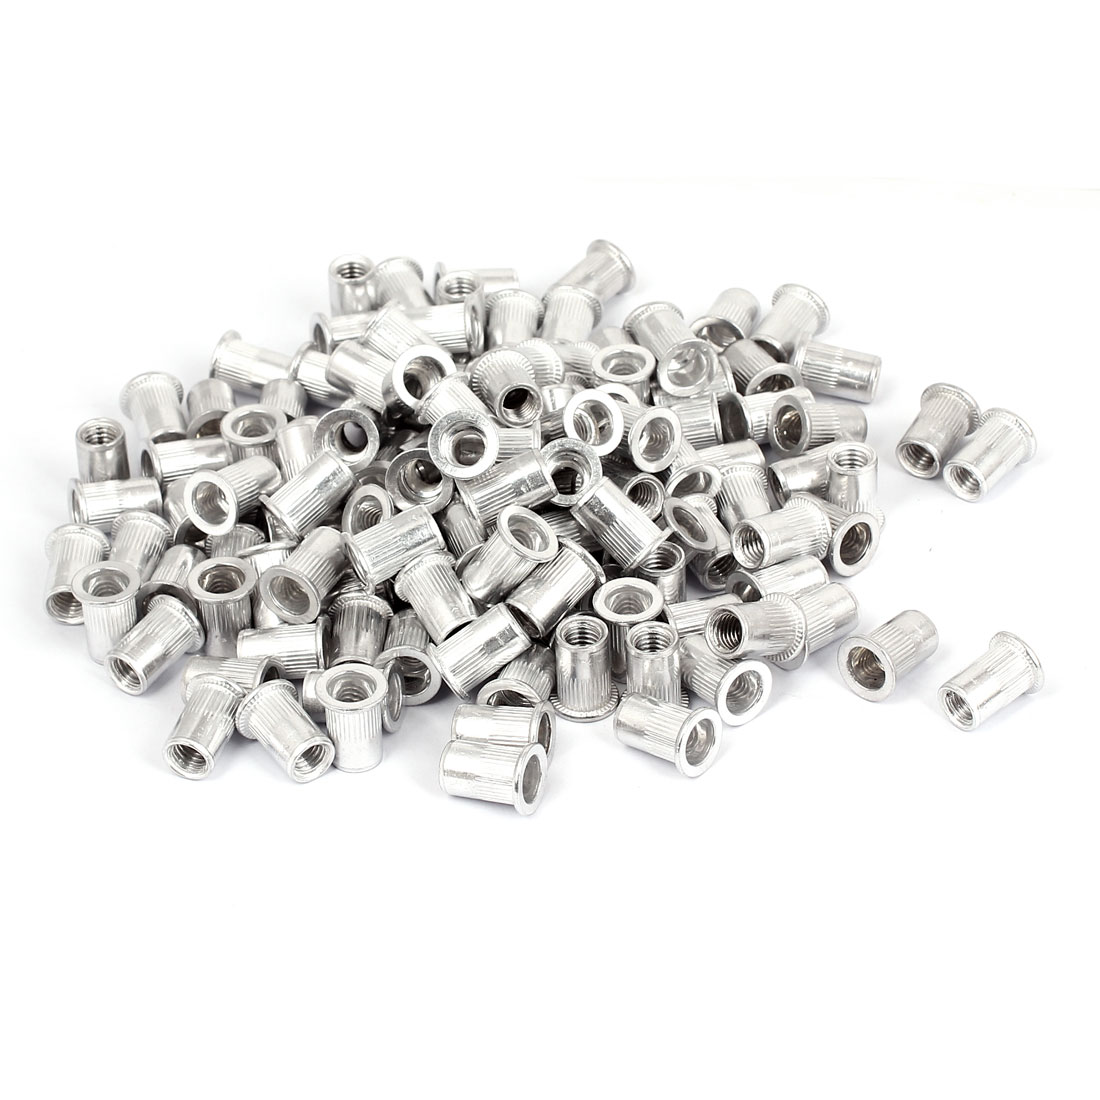 300pcs Aluminum Flat Head Knurled Body Threaded Rivet Nut Inserts M8x18mm